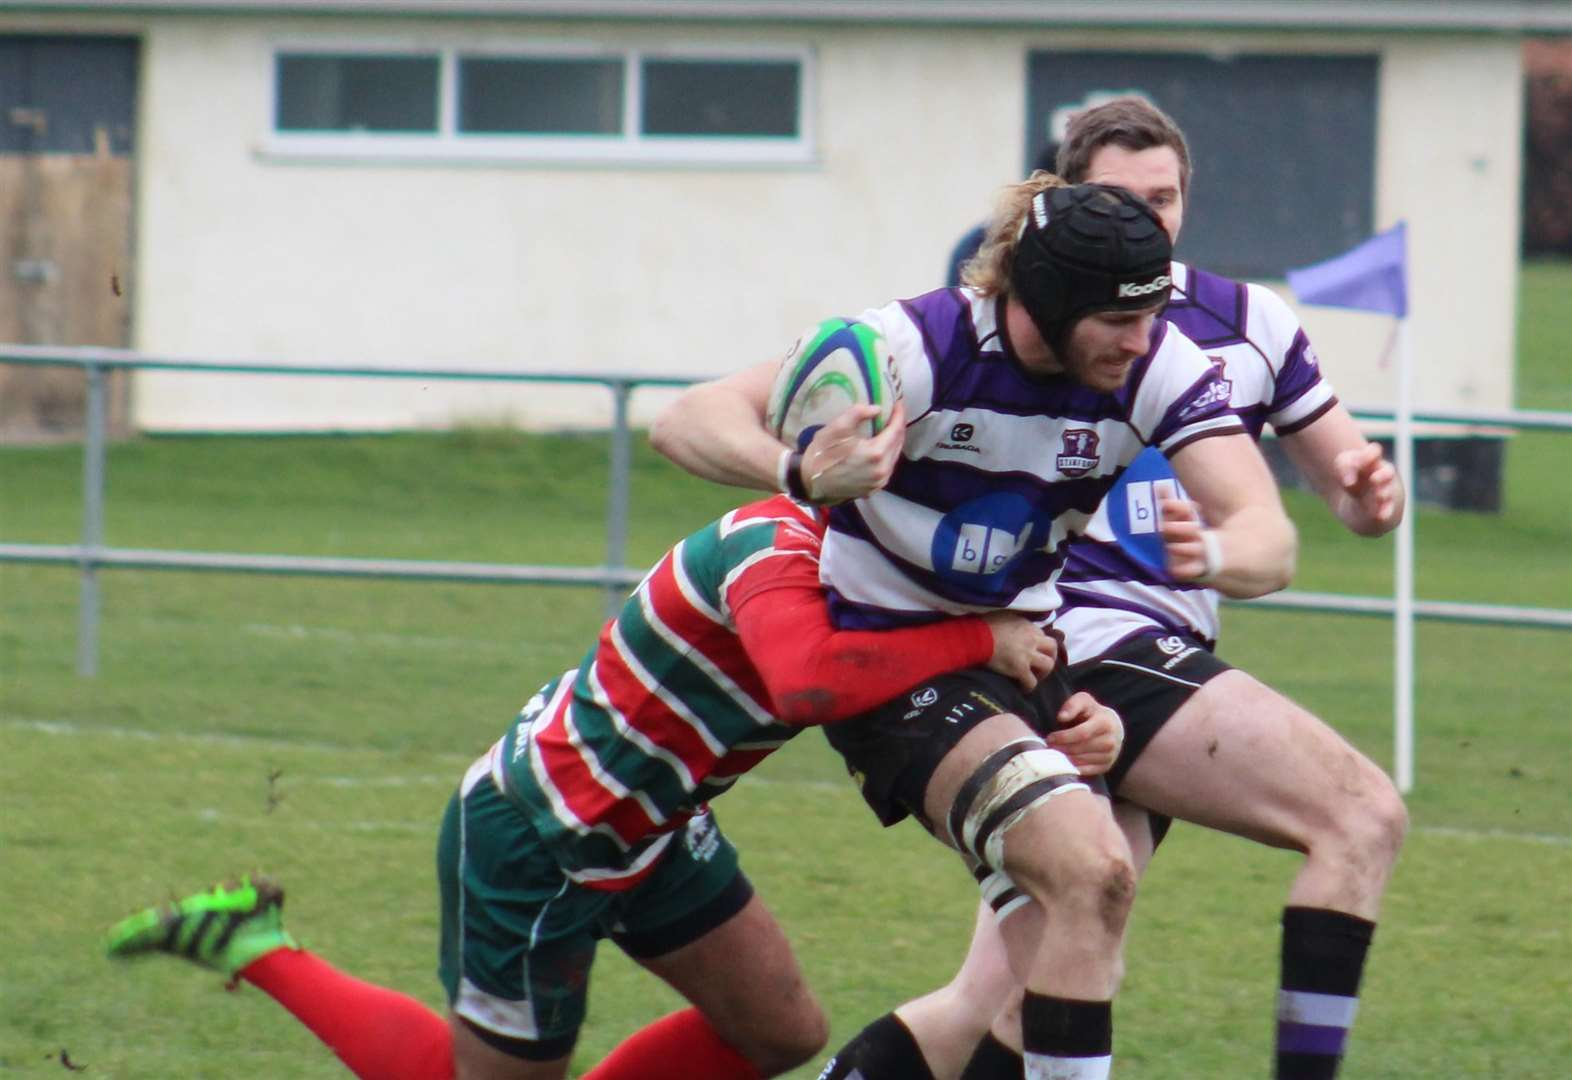 RUGBY: Stamford claim higher level scalp to seal semi-final spot